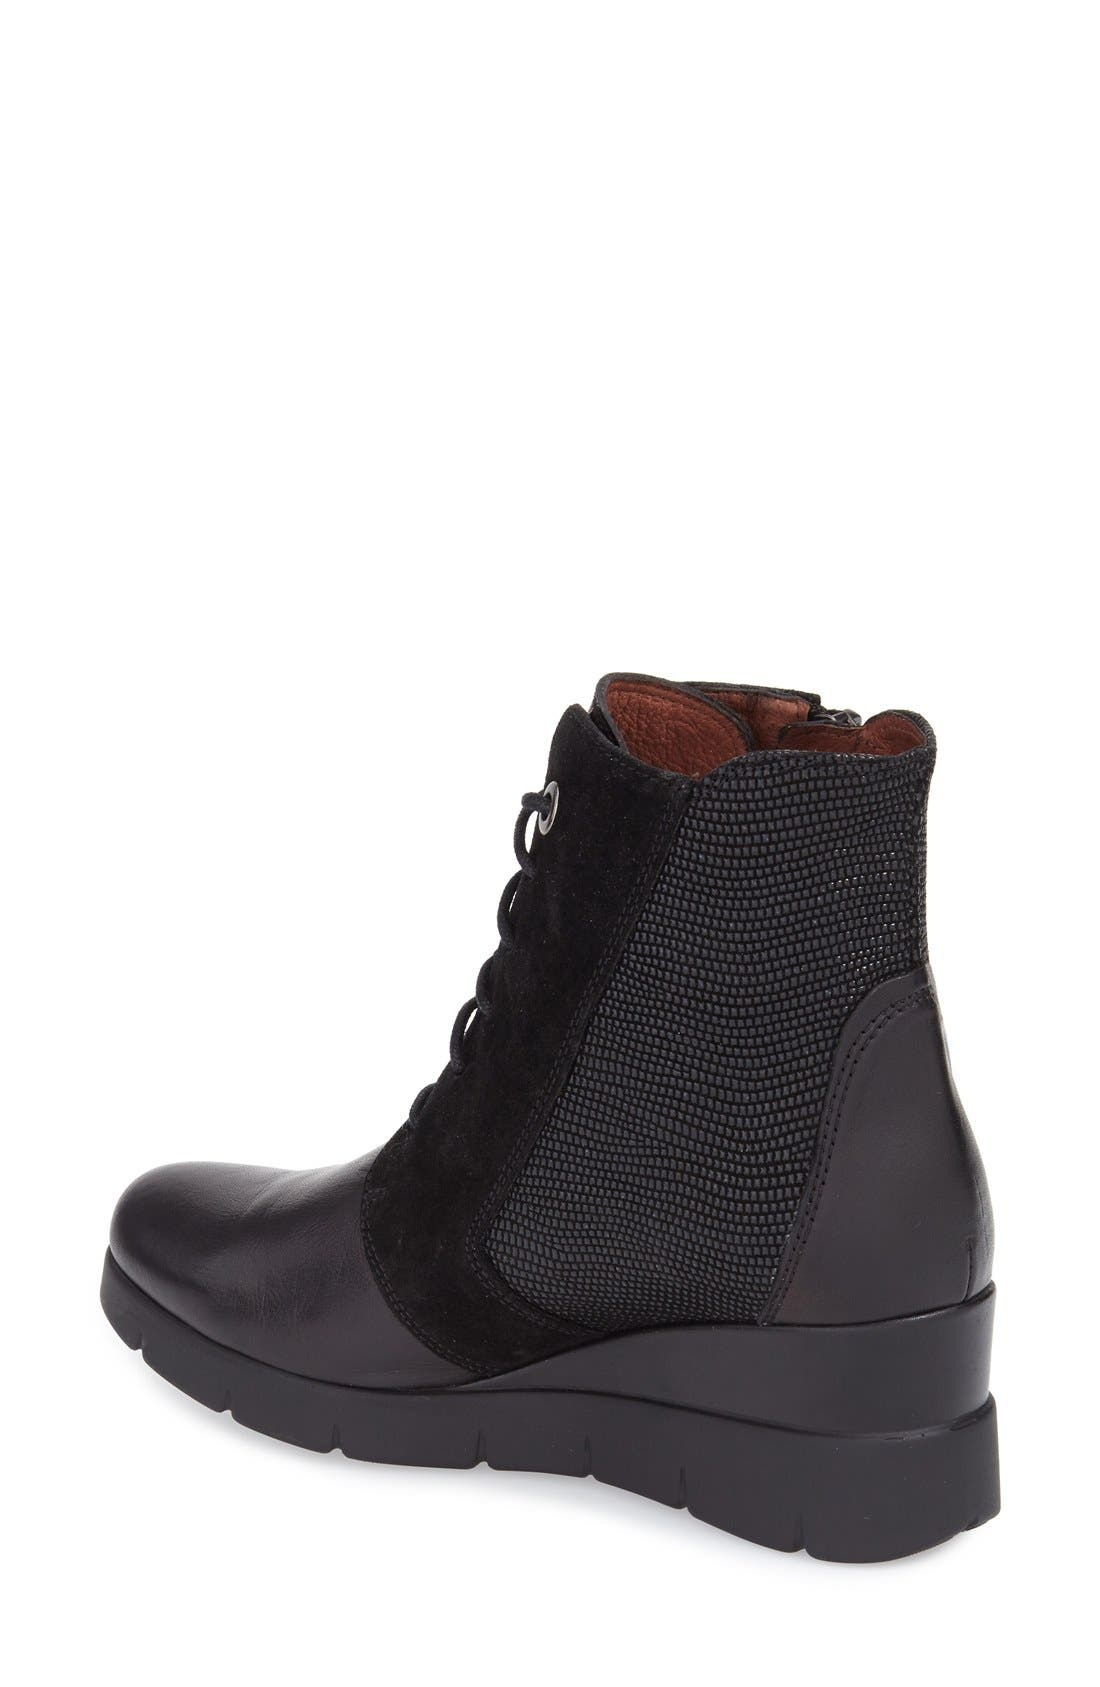 'Lydia' Bootie,                             Alternate thumbnail 2, color,                             Black Lizard Leather